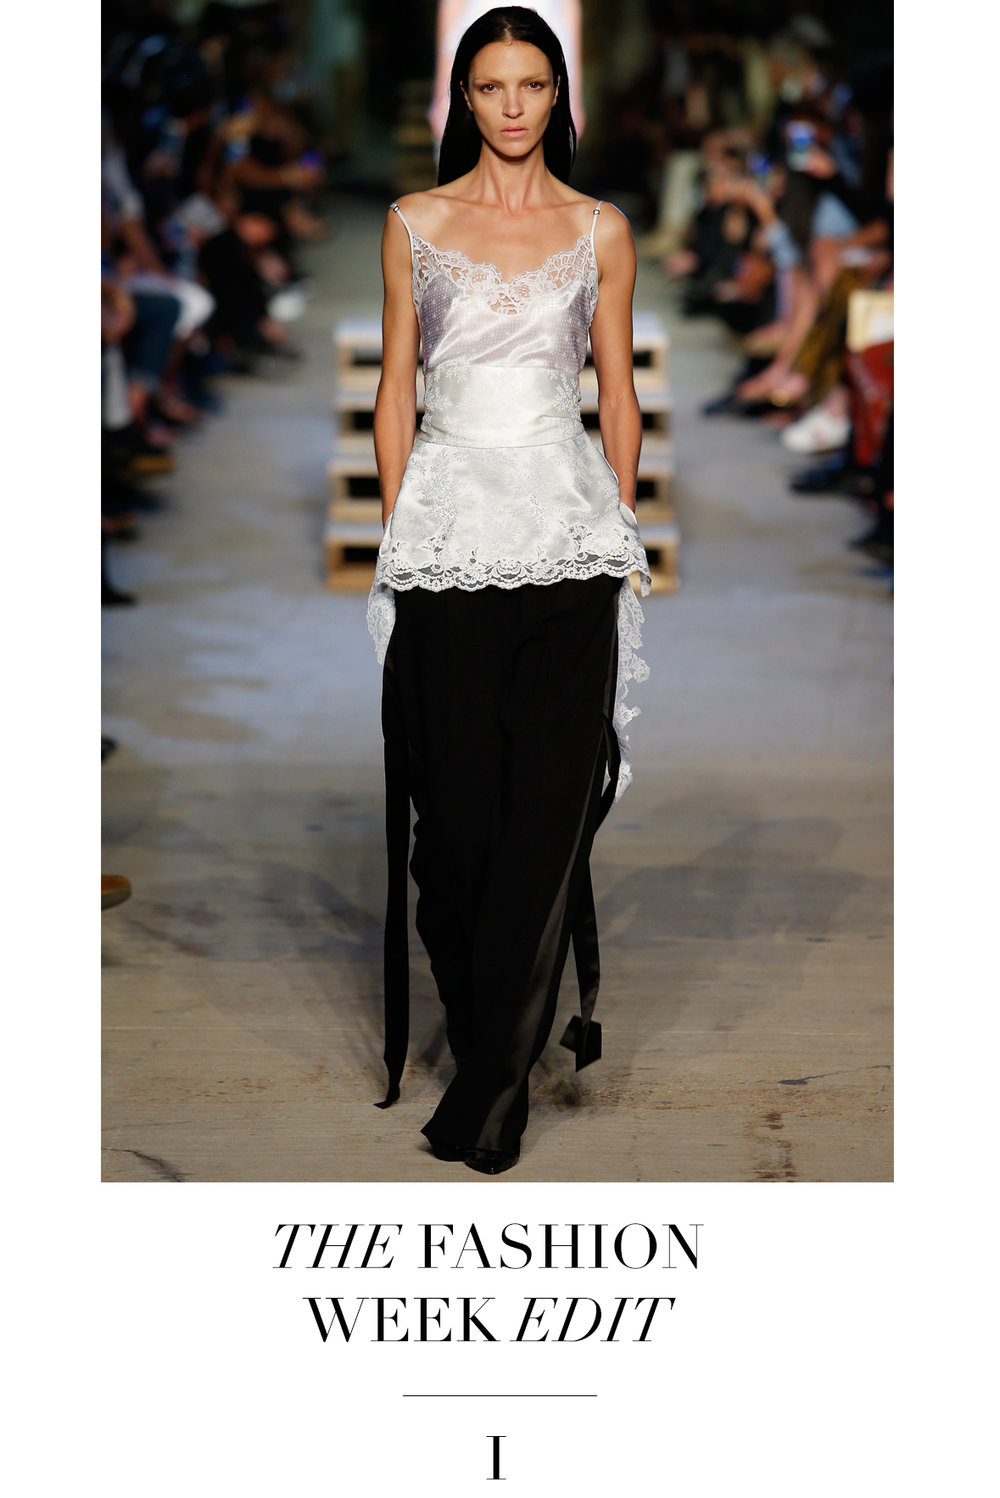 Fashion-week-trend-report-part-one-lingerie-la-femme.jpg